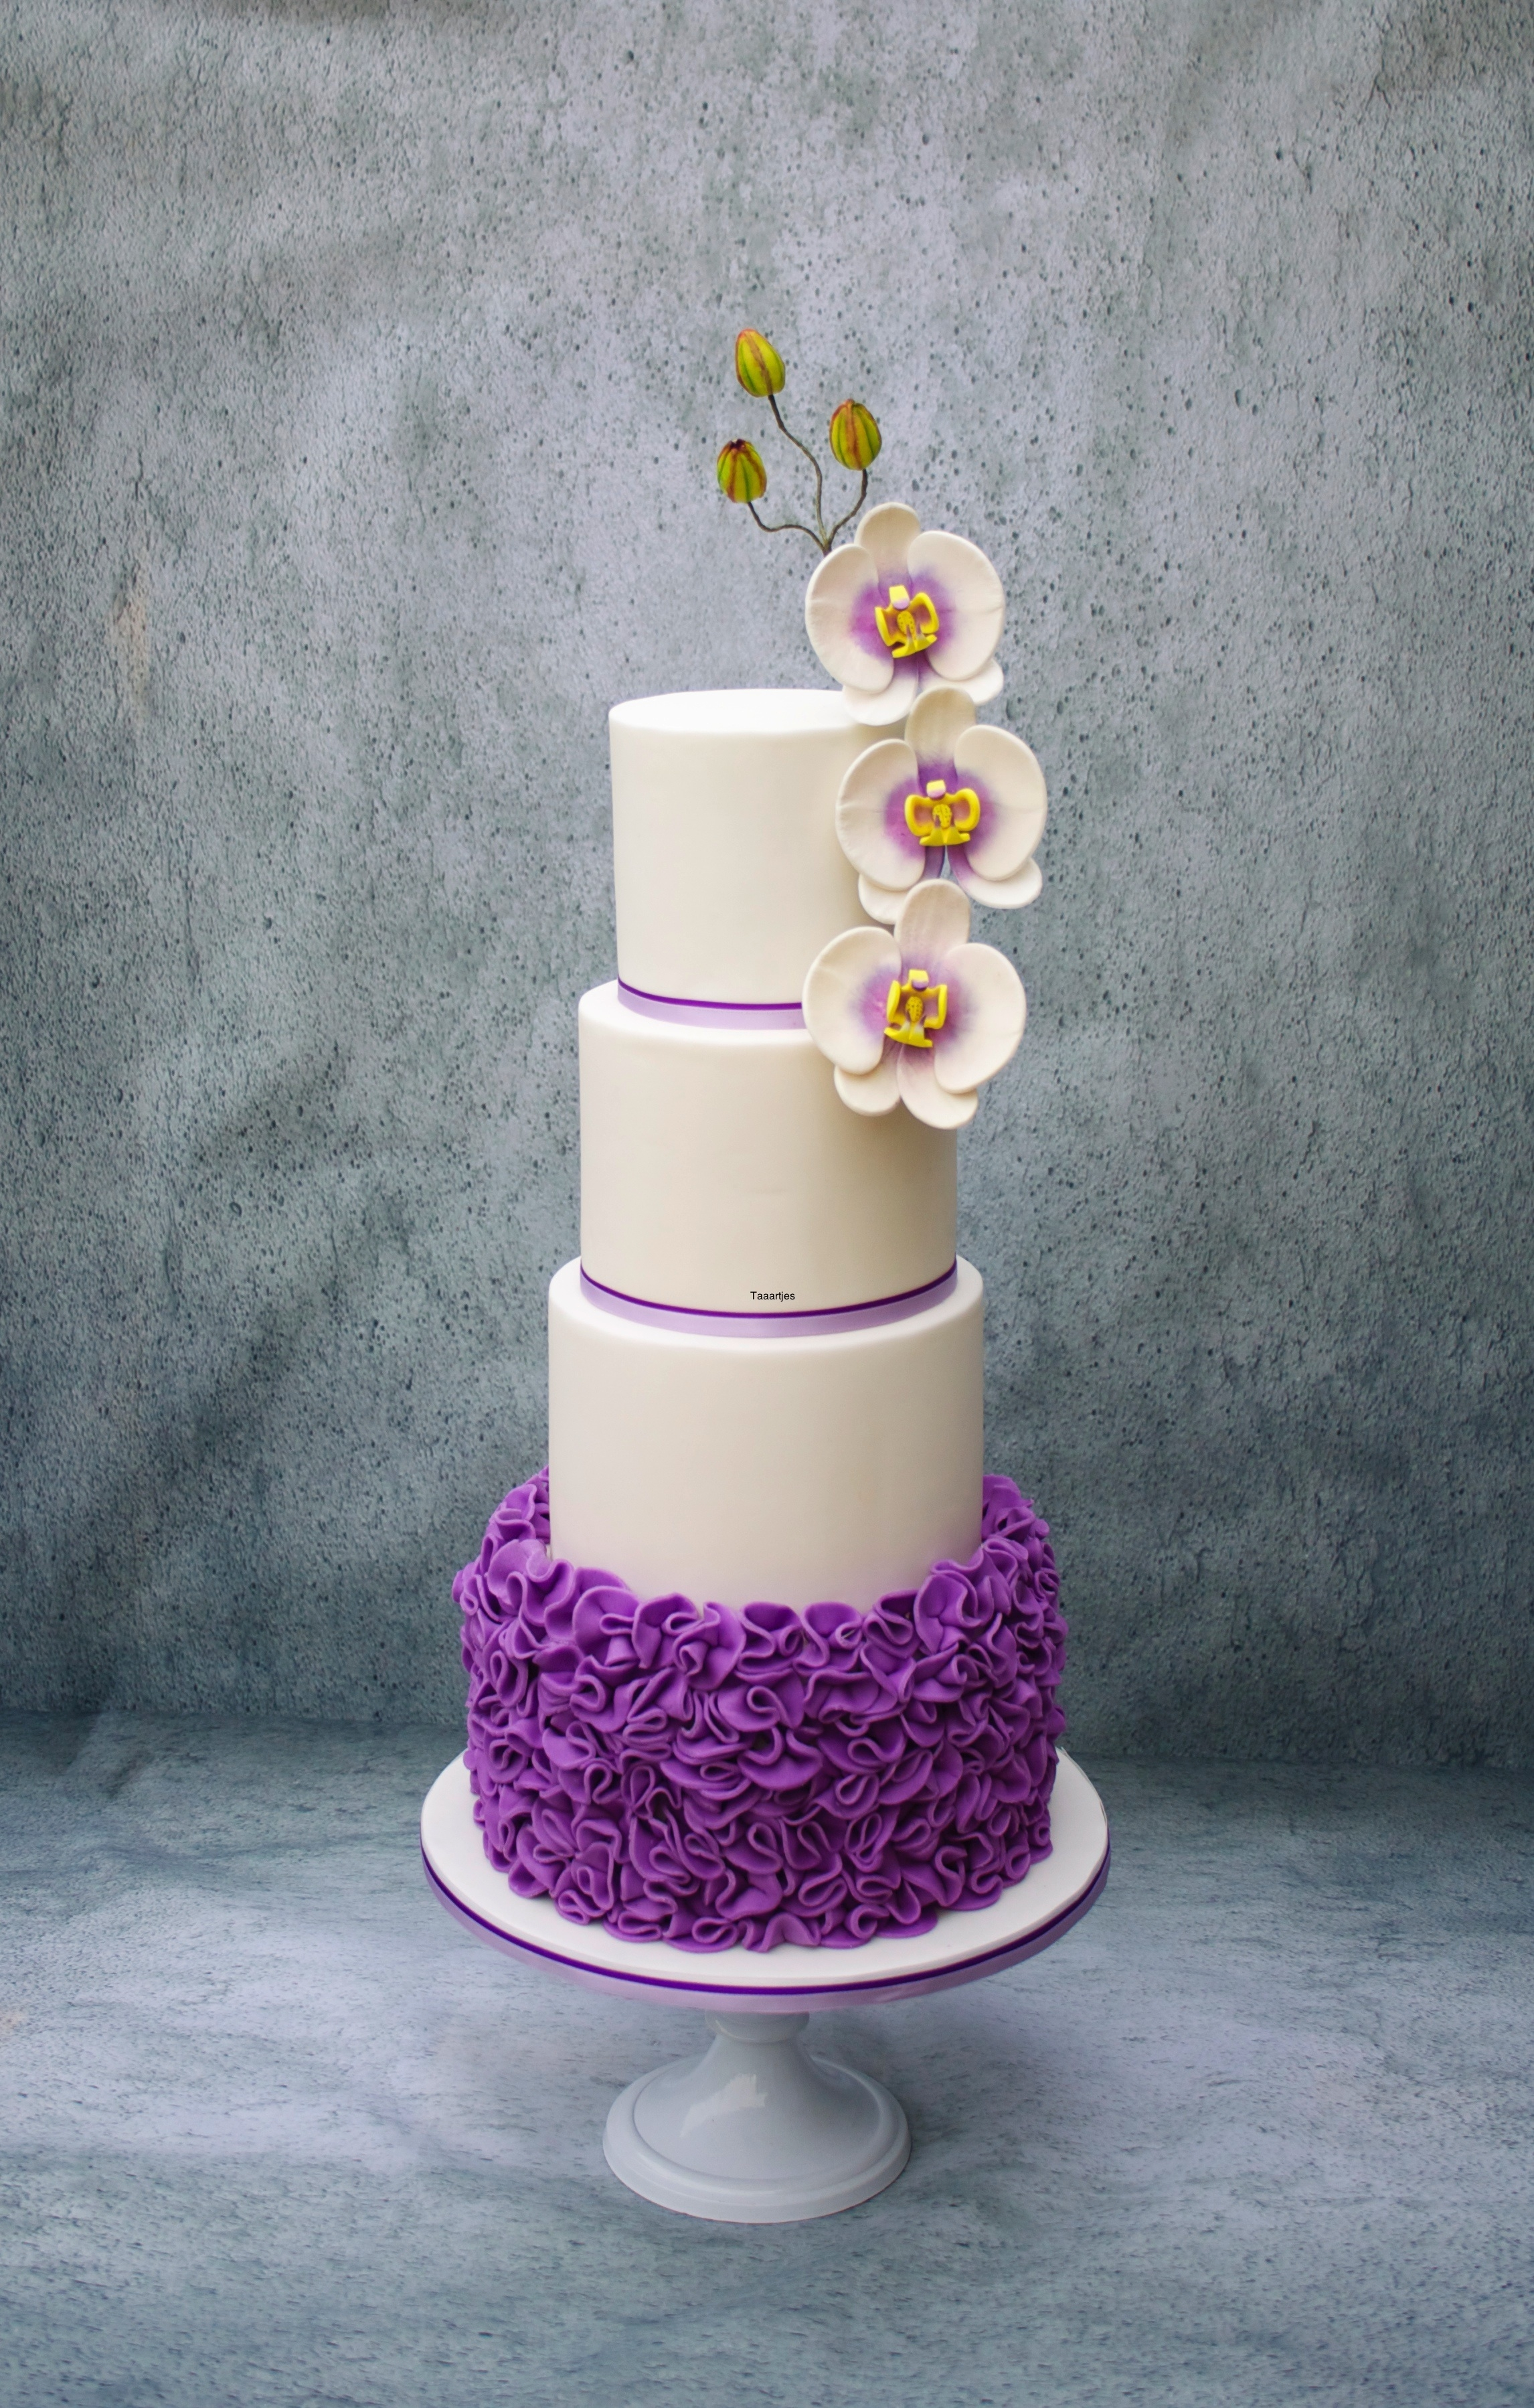 Wedding Cake With Ruffles And Handmade Orchids